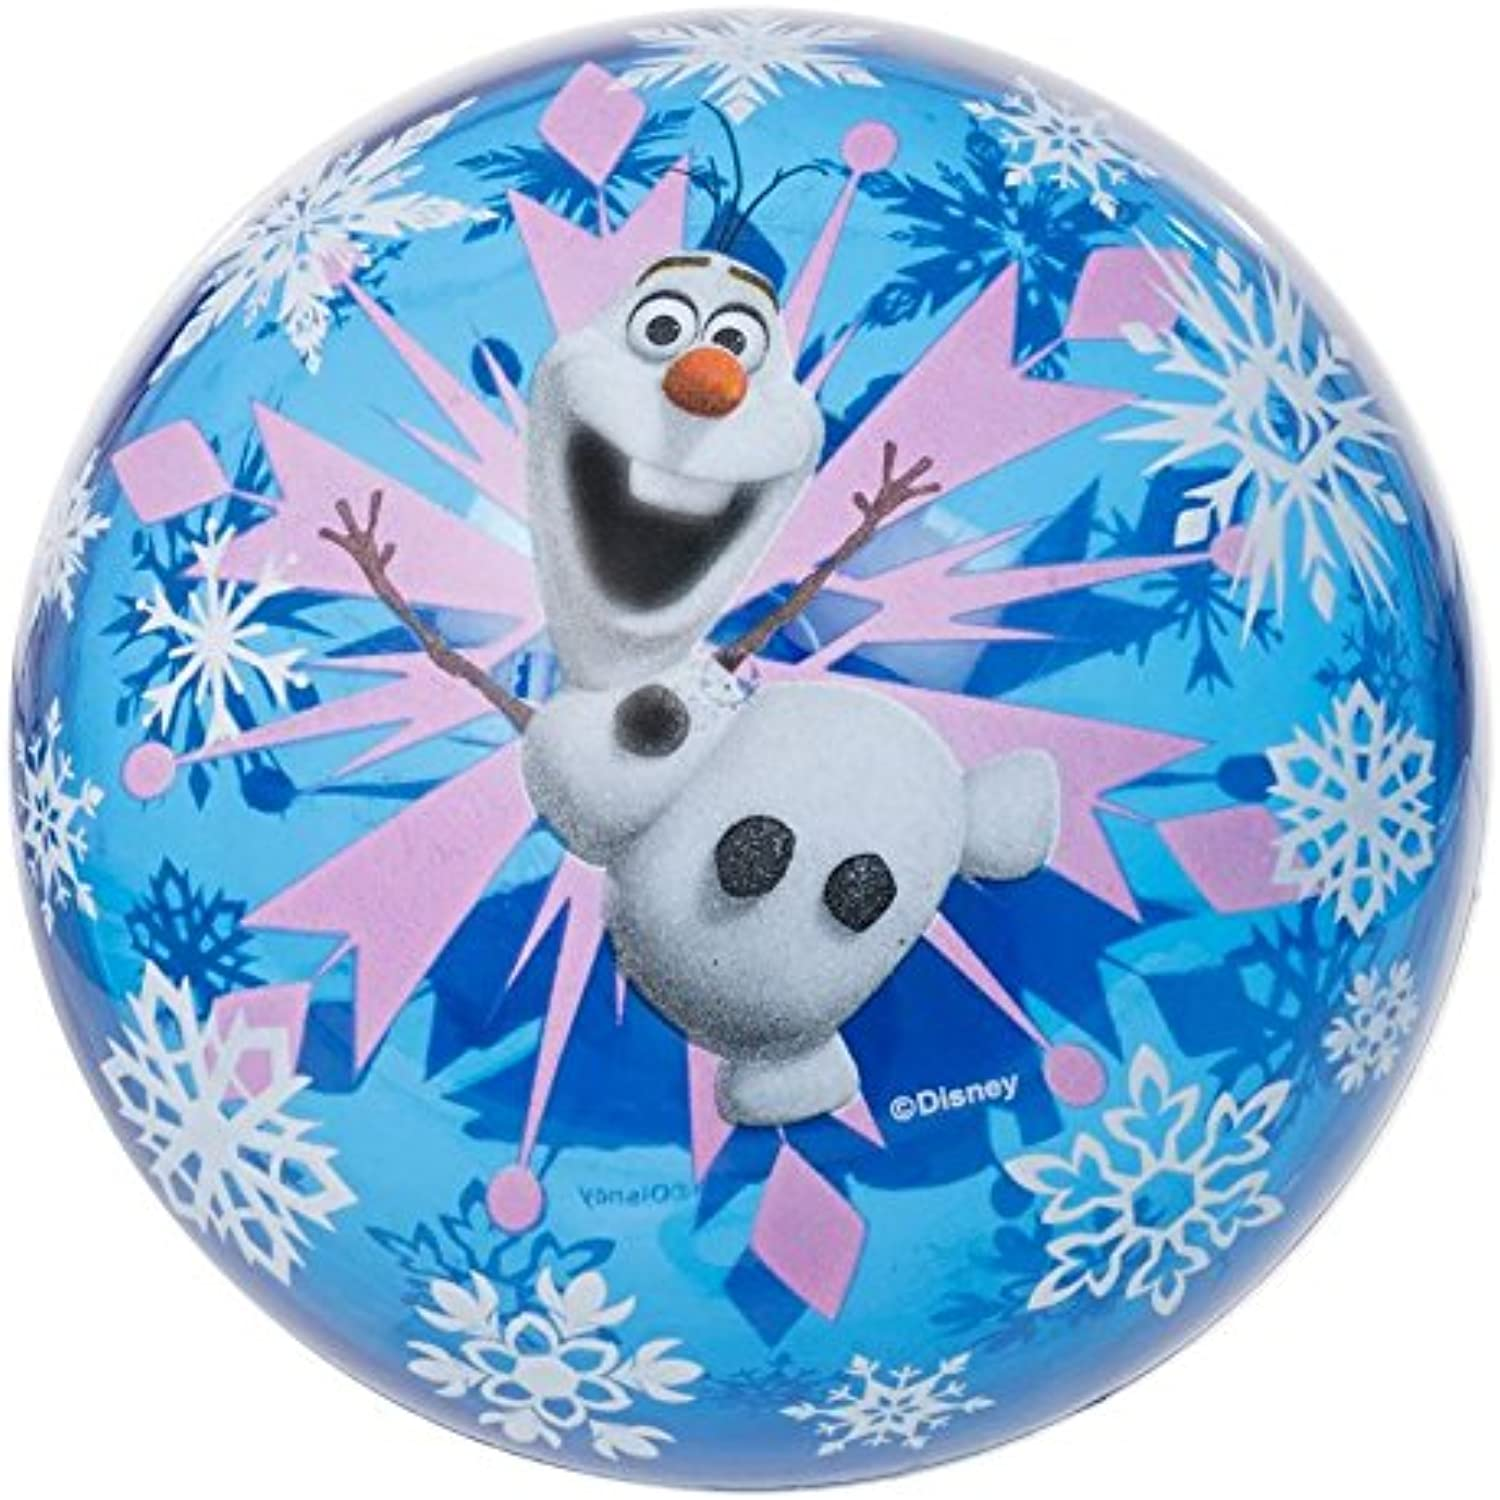 Disney Frozen Light Up 11cm Ball - Pack of 2